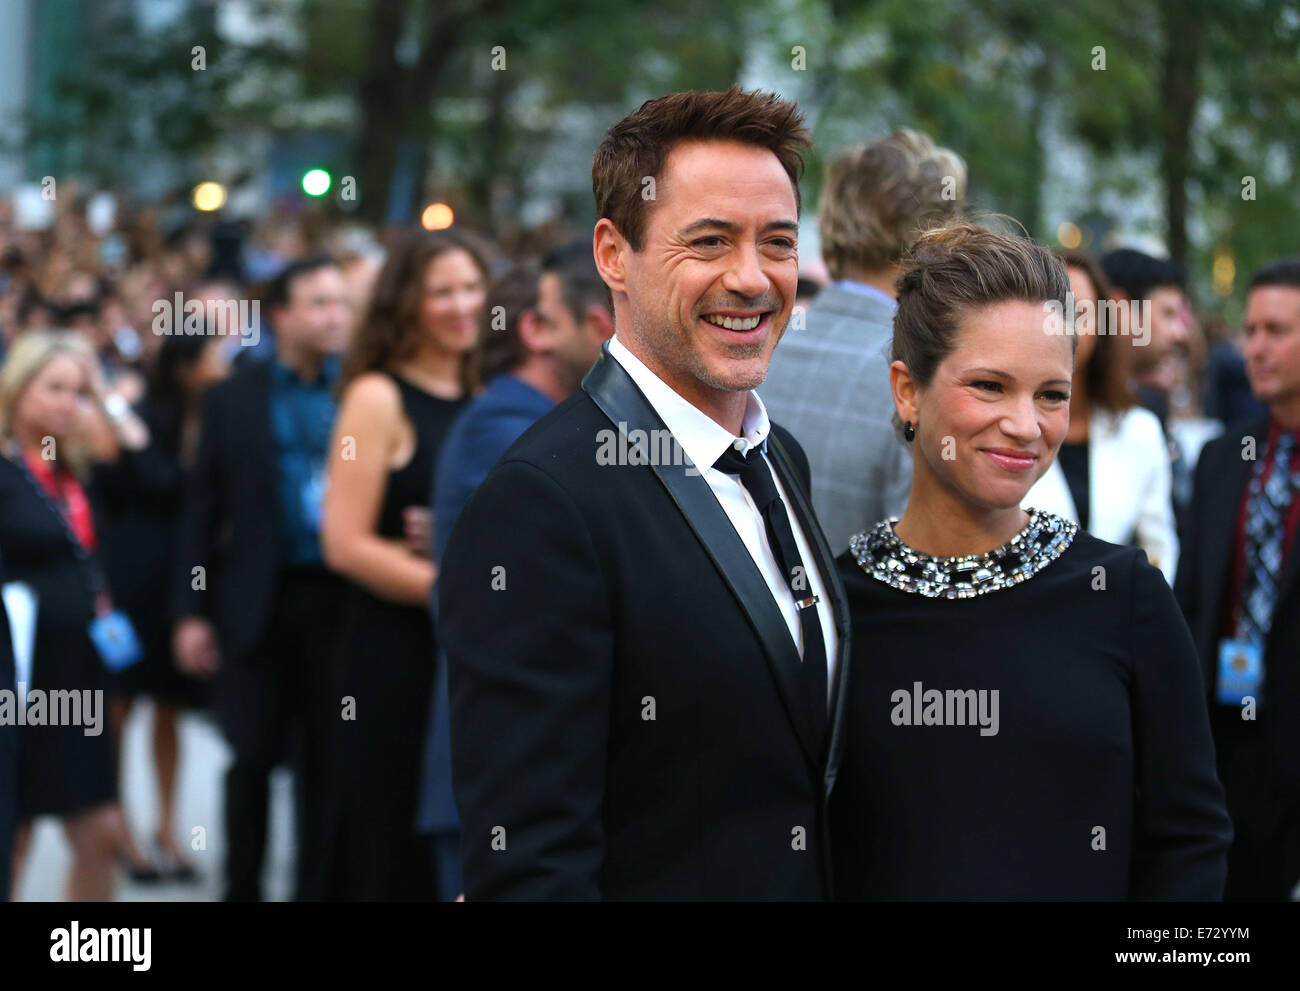 Toronto, Canada. 4th Sep, 2014. Actor Robert Downey Jr. and his wife Susan Downey arrive for the premiere of the - Stock Image